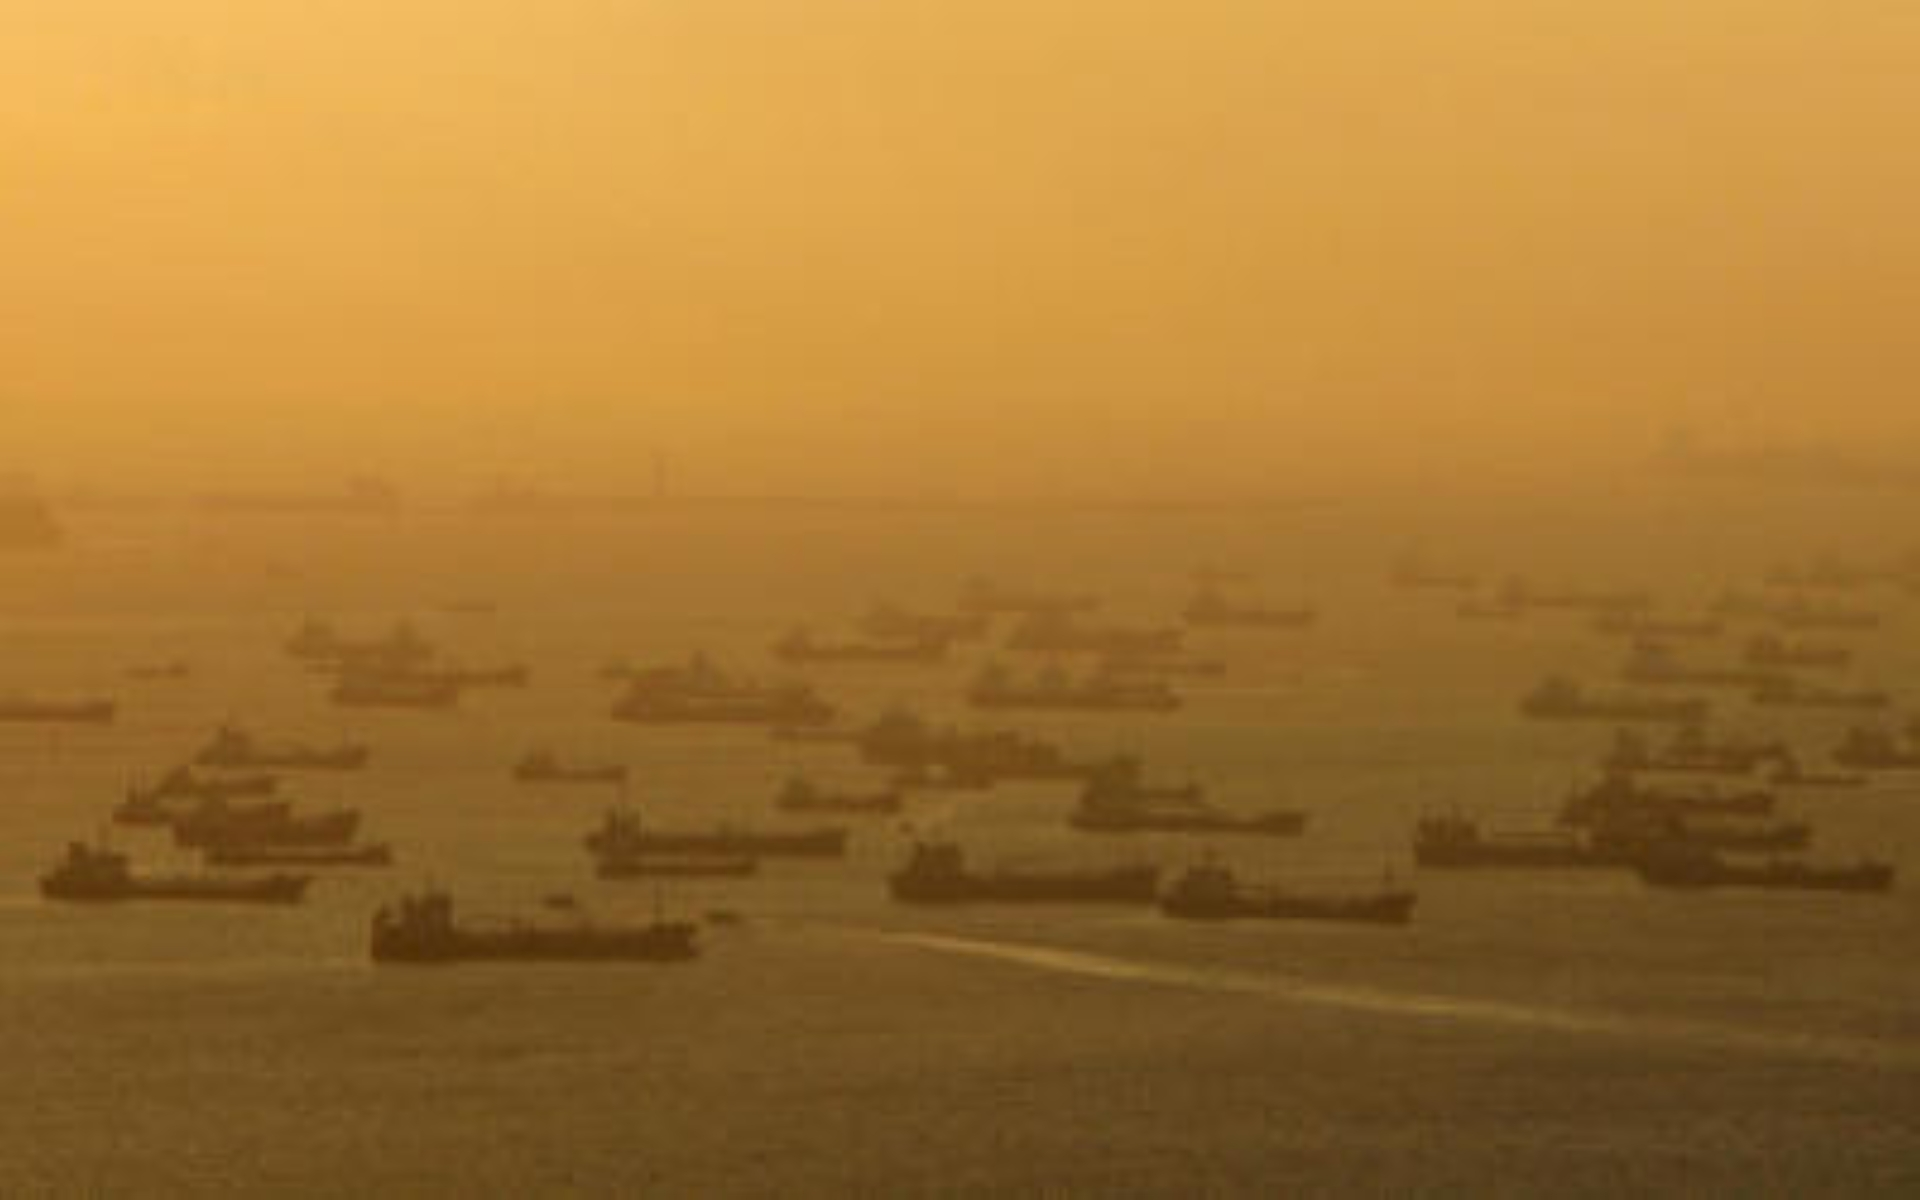 After 30 years in Singapore, oil trading losses force